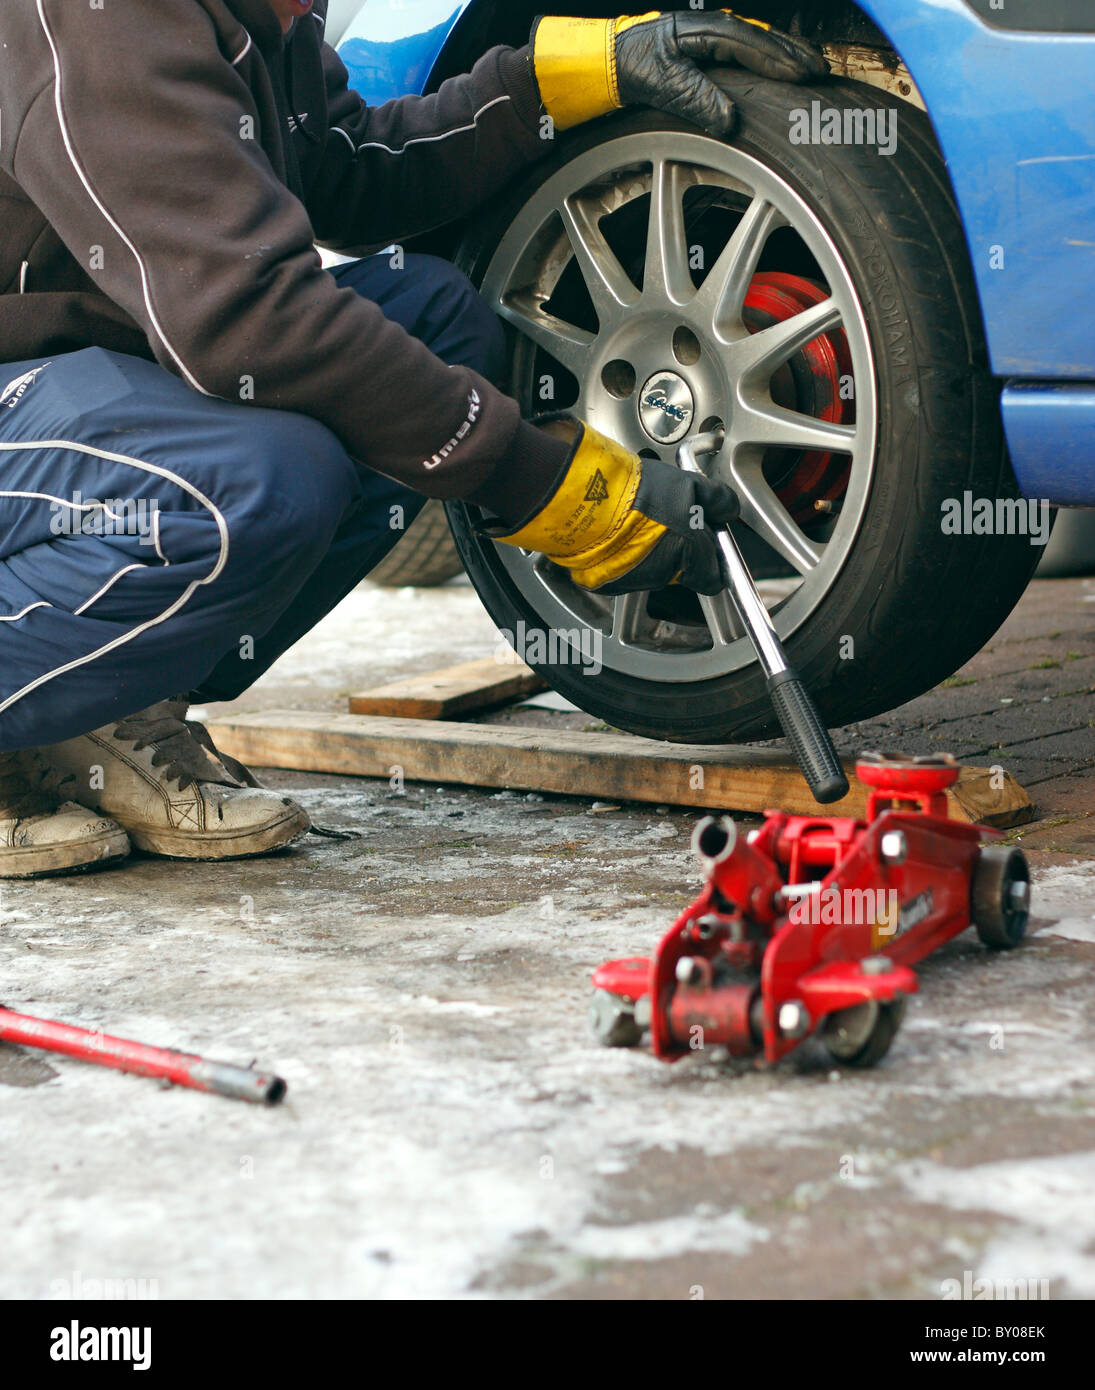 A mechanic unscrewing the wheel nuts with a wrench to remove the wheel from a car, wearing rigger gloves for protection. - Stock Image